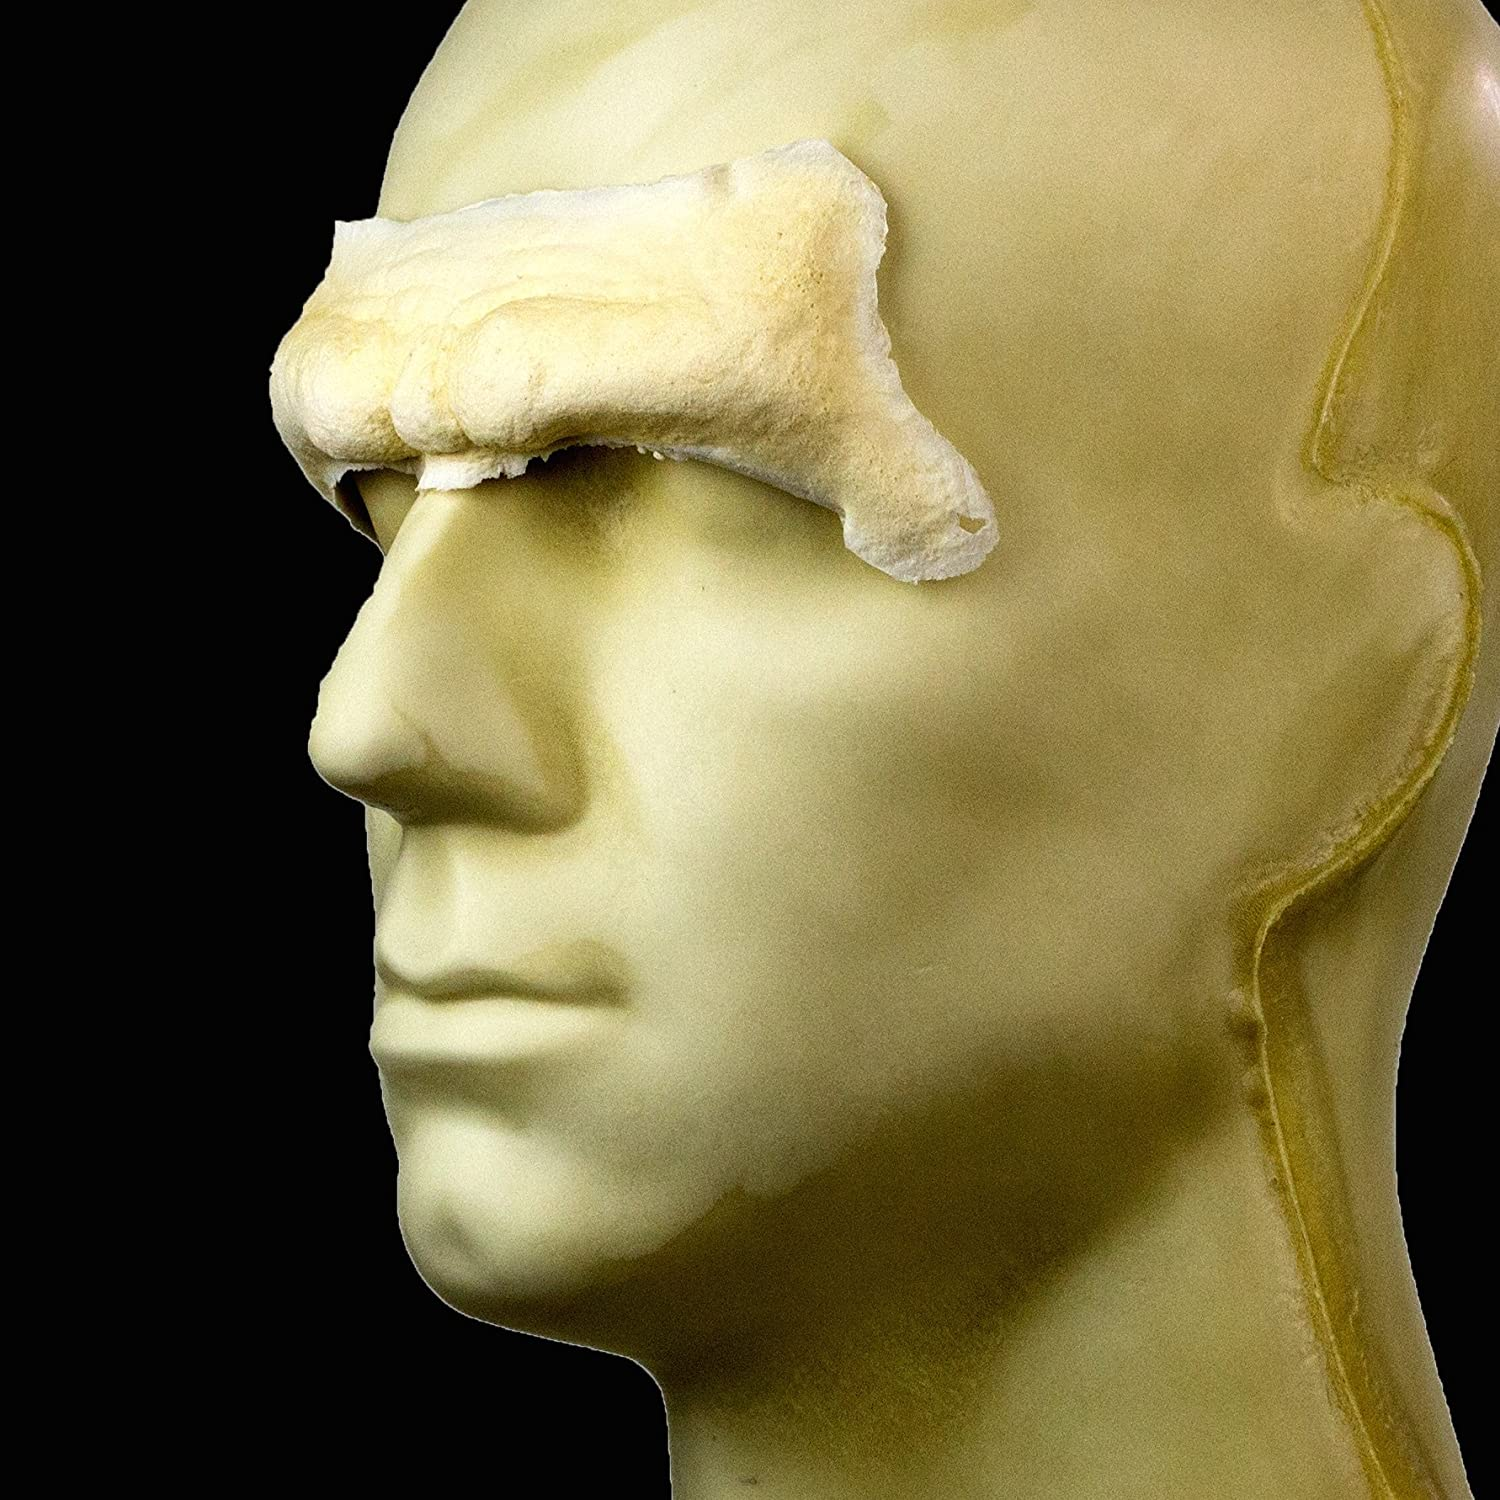 Amazon.com: Rubber Wear Foam Latex Prosthetic - Caveman Forehead FRW-043 -  Makeup and Theater FX: Toys & Games